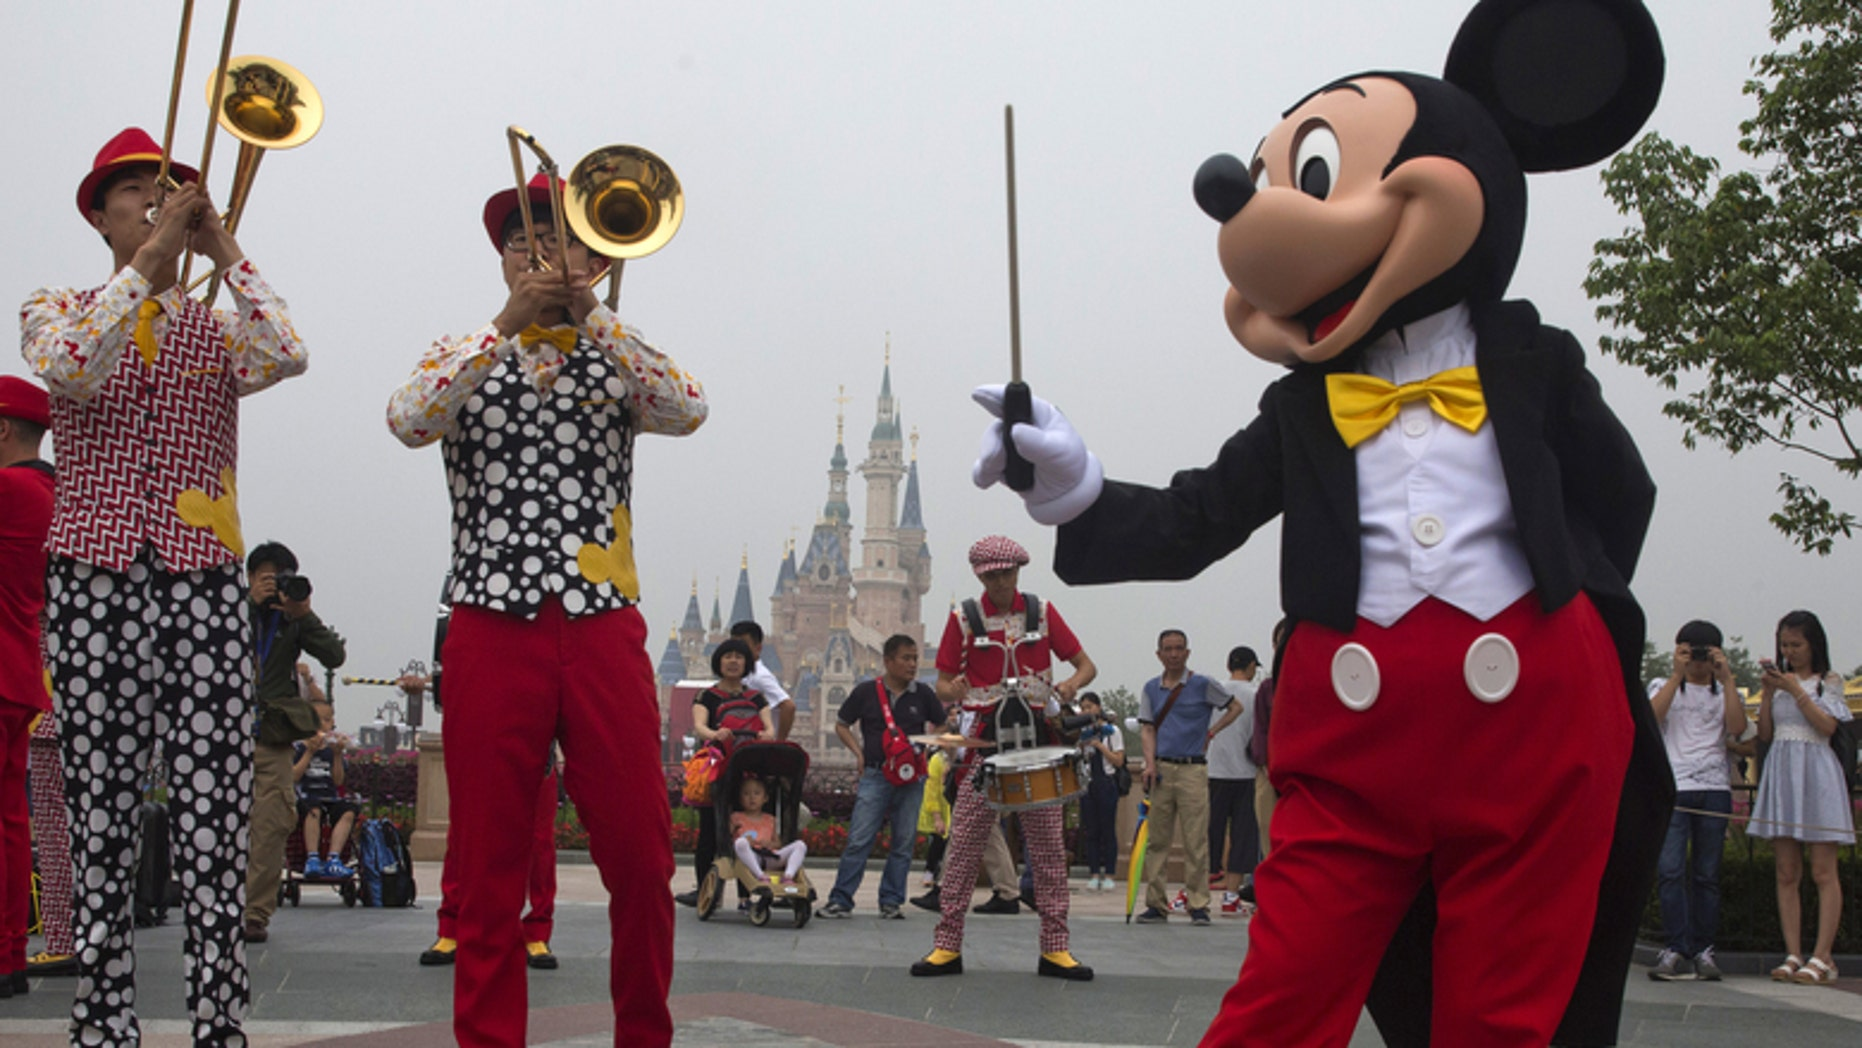 Mickey Mouse entertains onlookers on the rainy day opening of Shanghai Disney Resort.